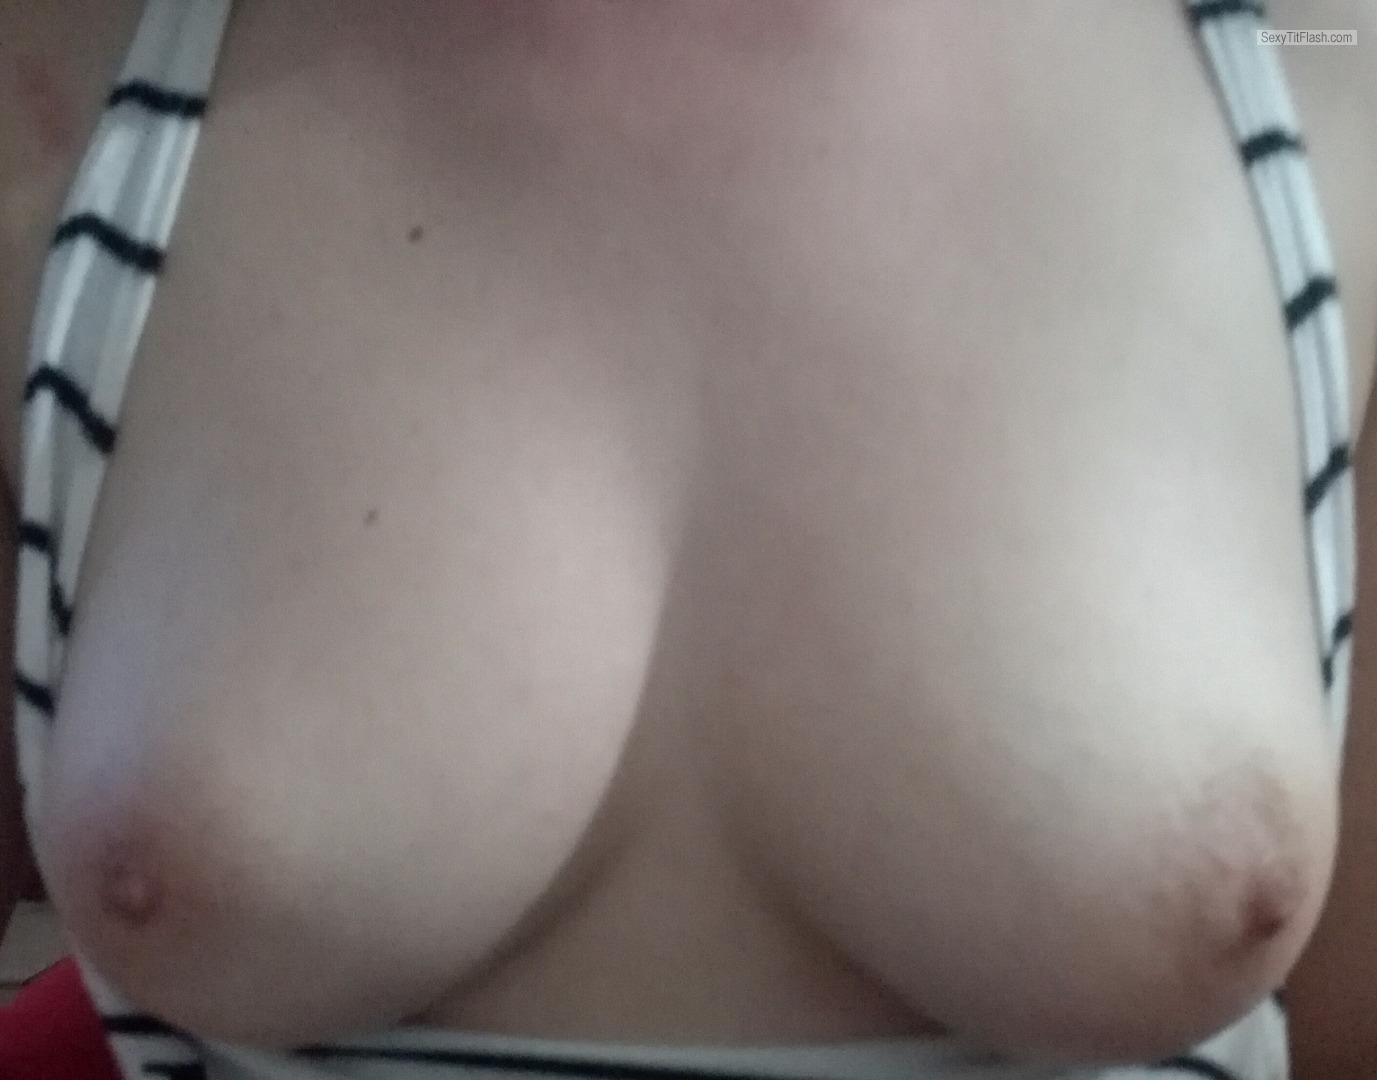 Tit Flash: My Tanlined Small Tits (Selfie) - Sc from United Kingdom